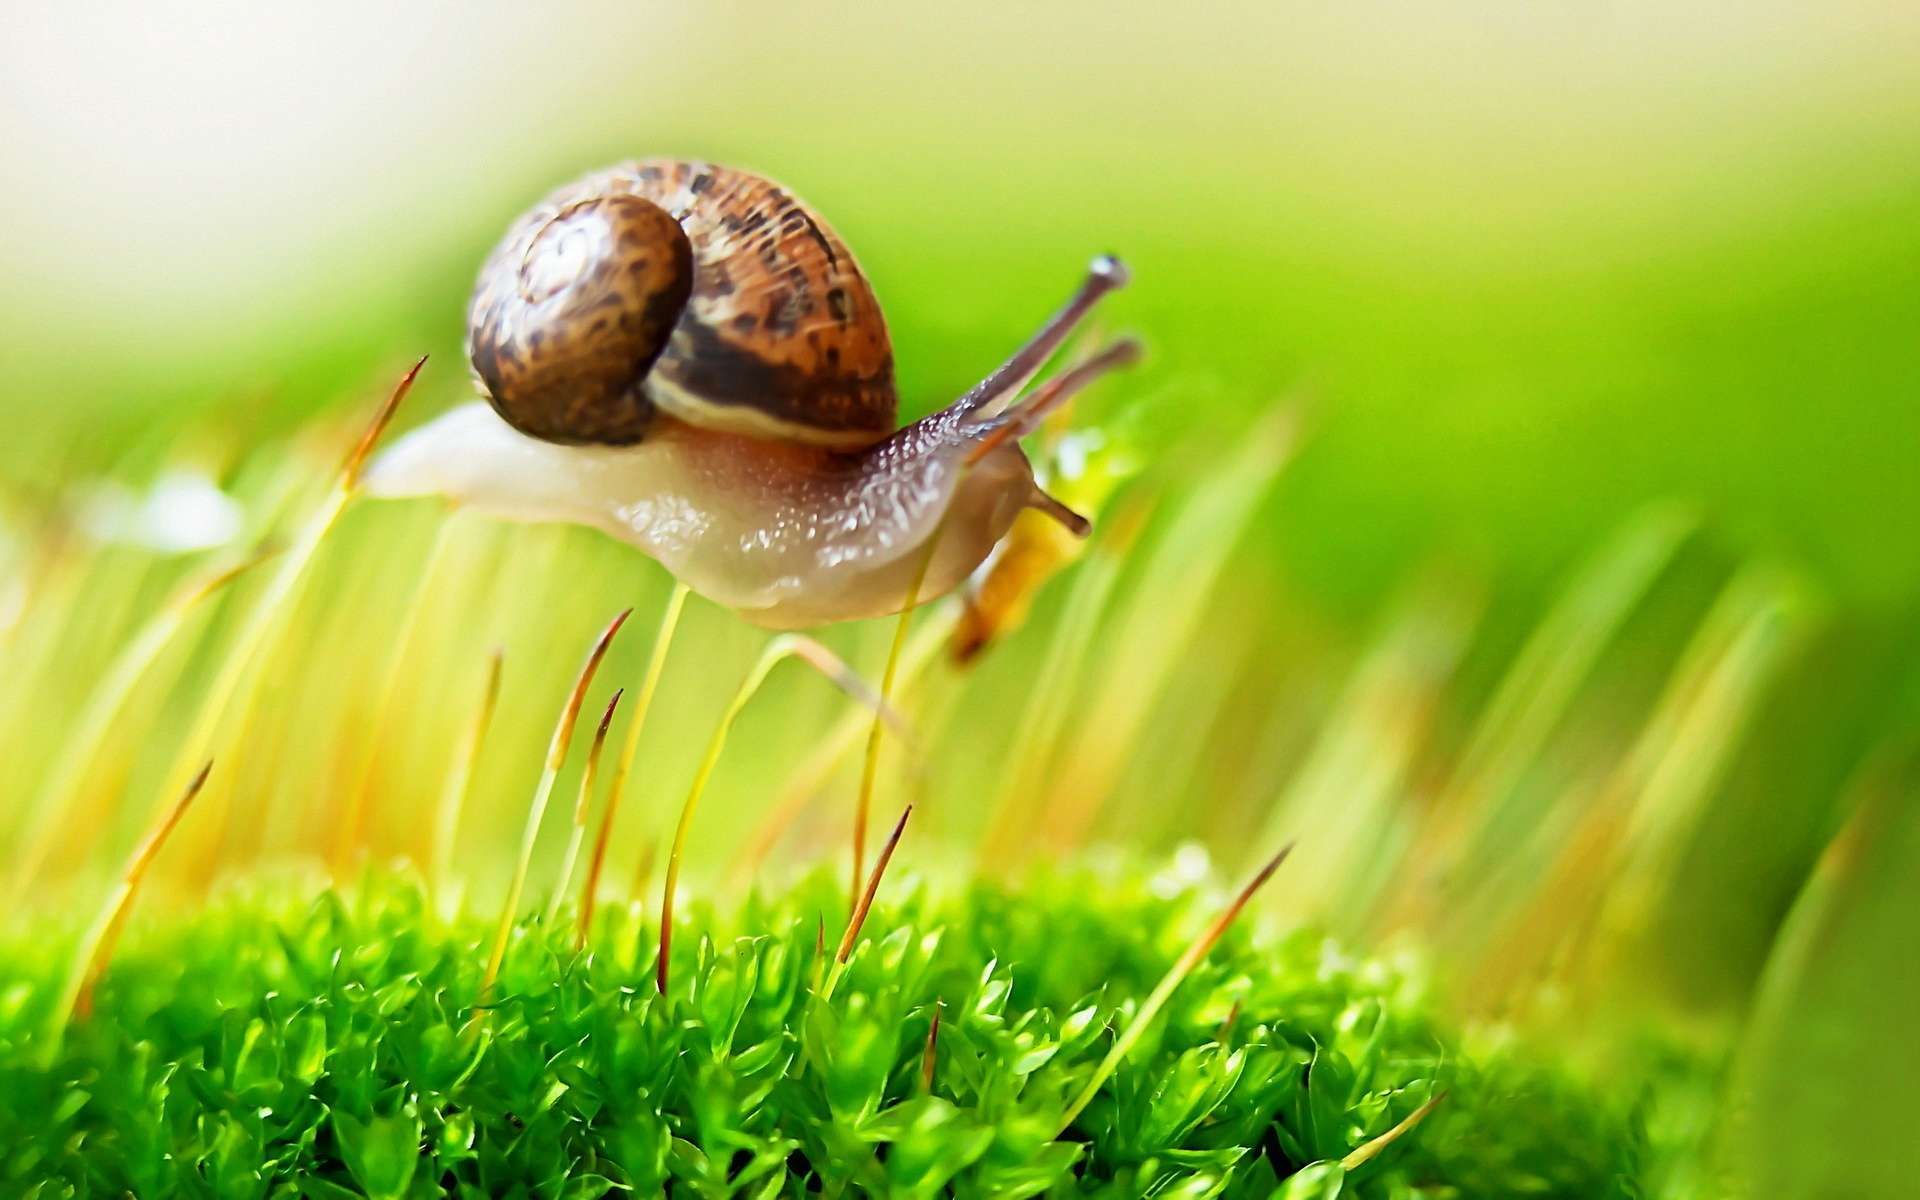 Cute Wallpapers On Computer 36 Excellent Hd Snail Wallpapers